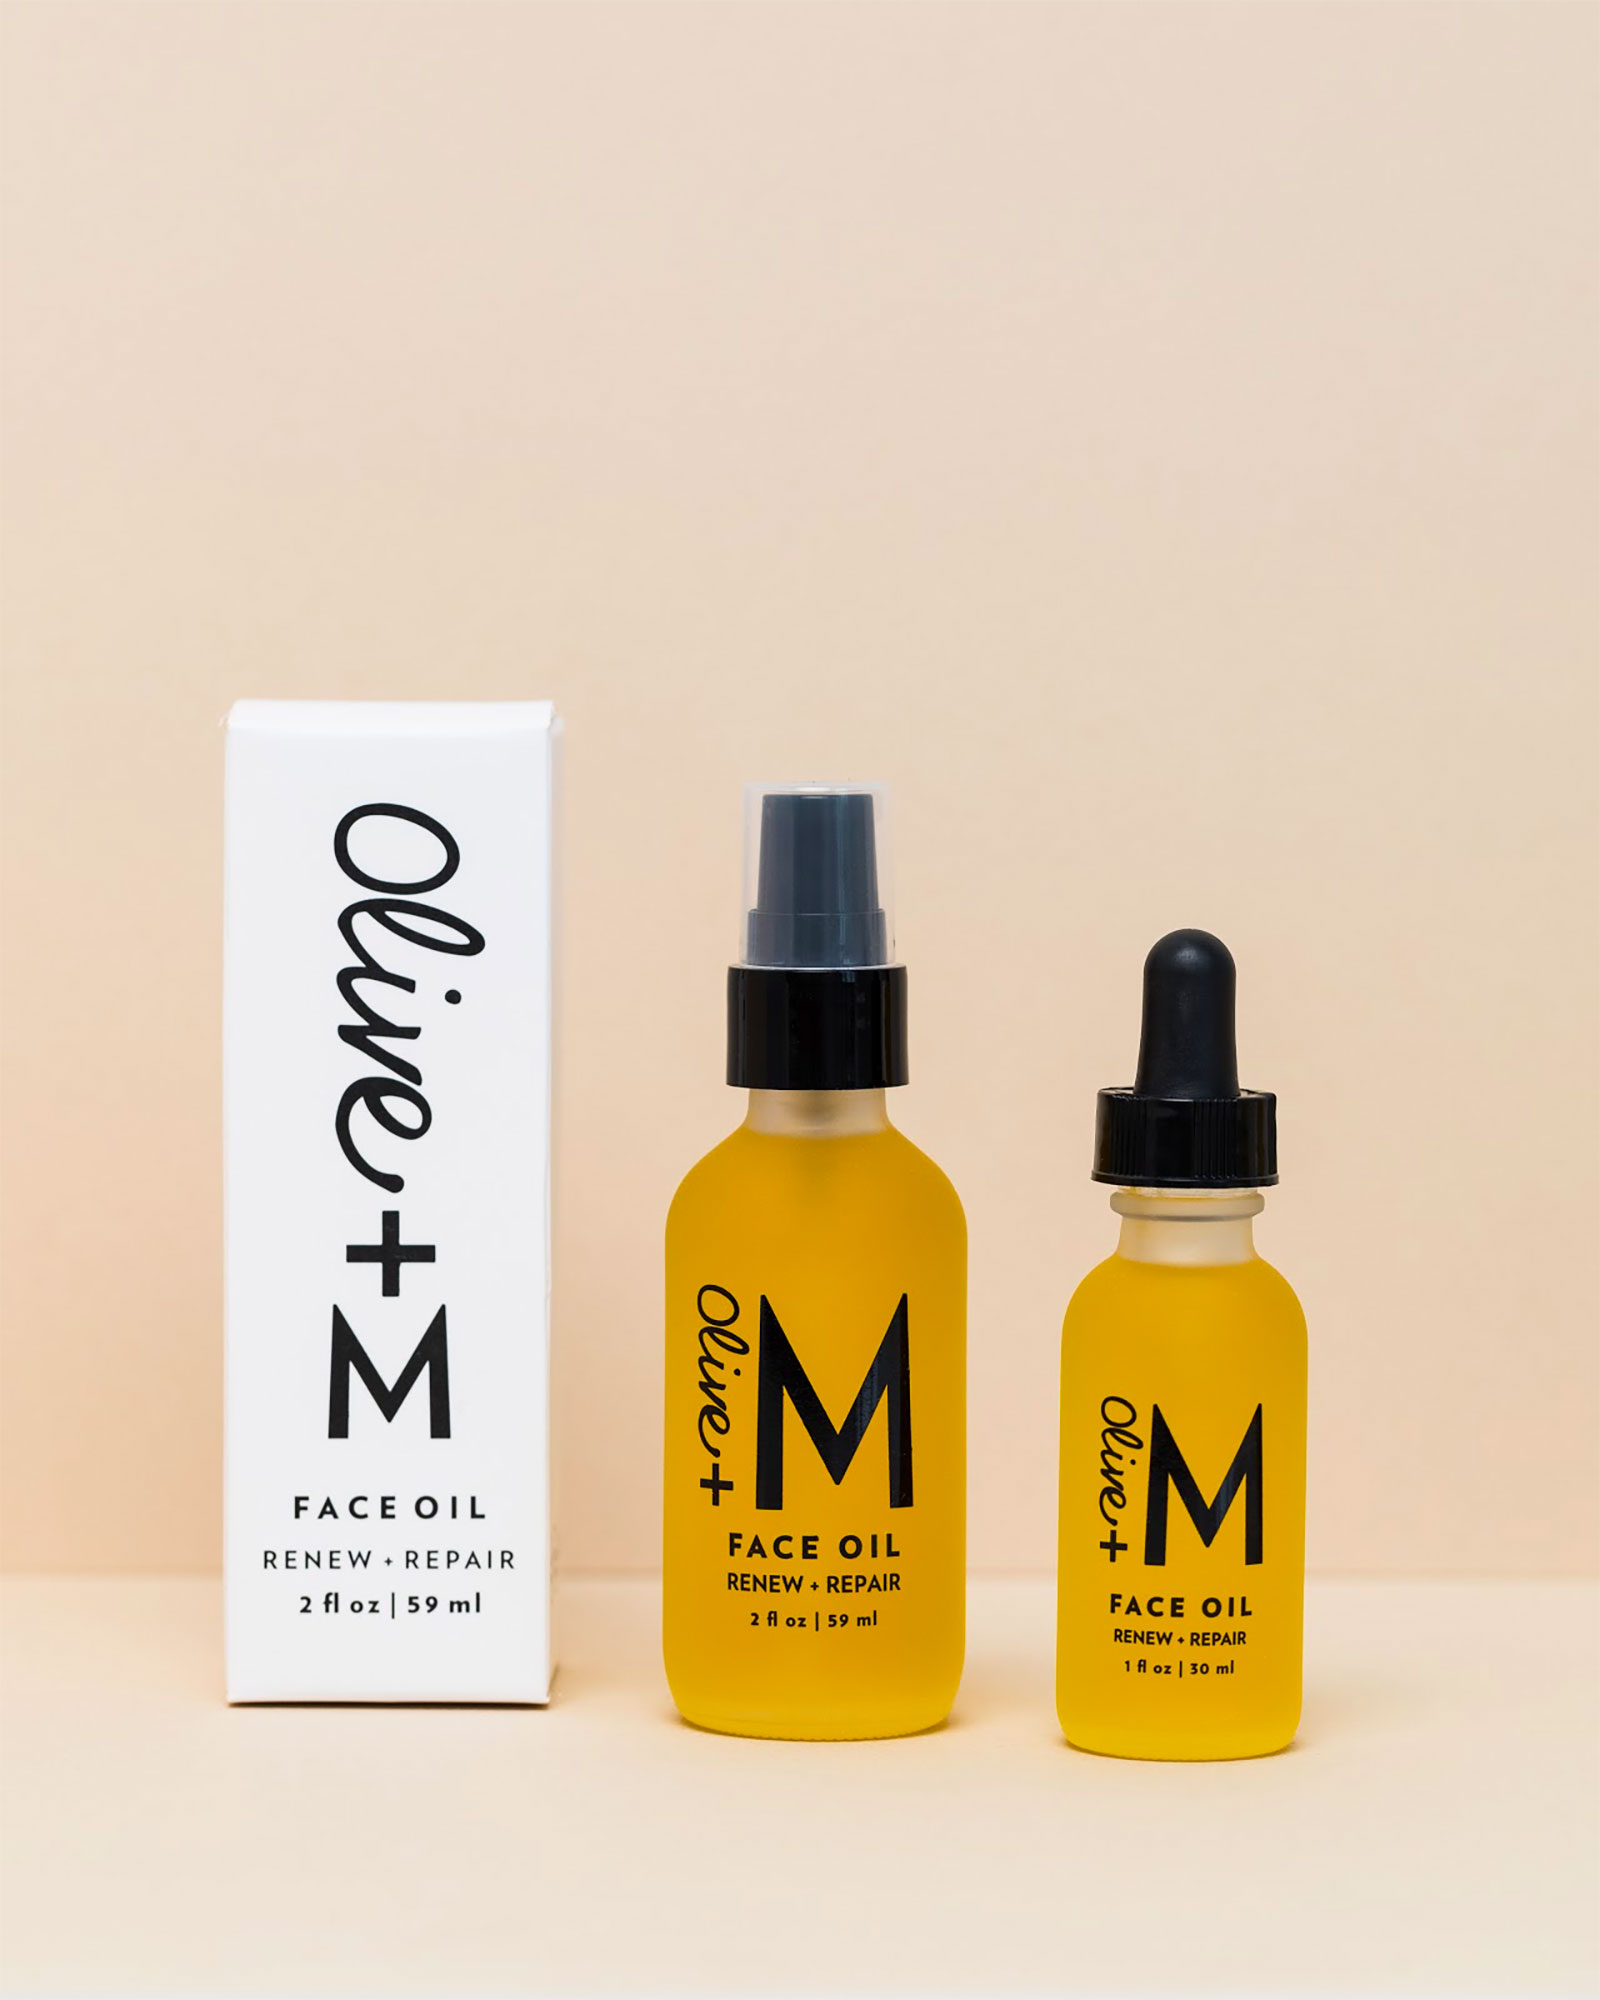 Women's History Month Gallery - Upgrade your skincare routine for a good cause with this olive oil-based line. 20 percent of the proceeds from the brand's hero product will be donated to the Jeremiah Program, which helps single mothers to excel in the workforce.